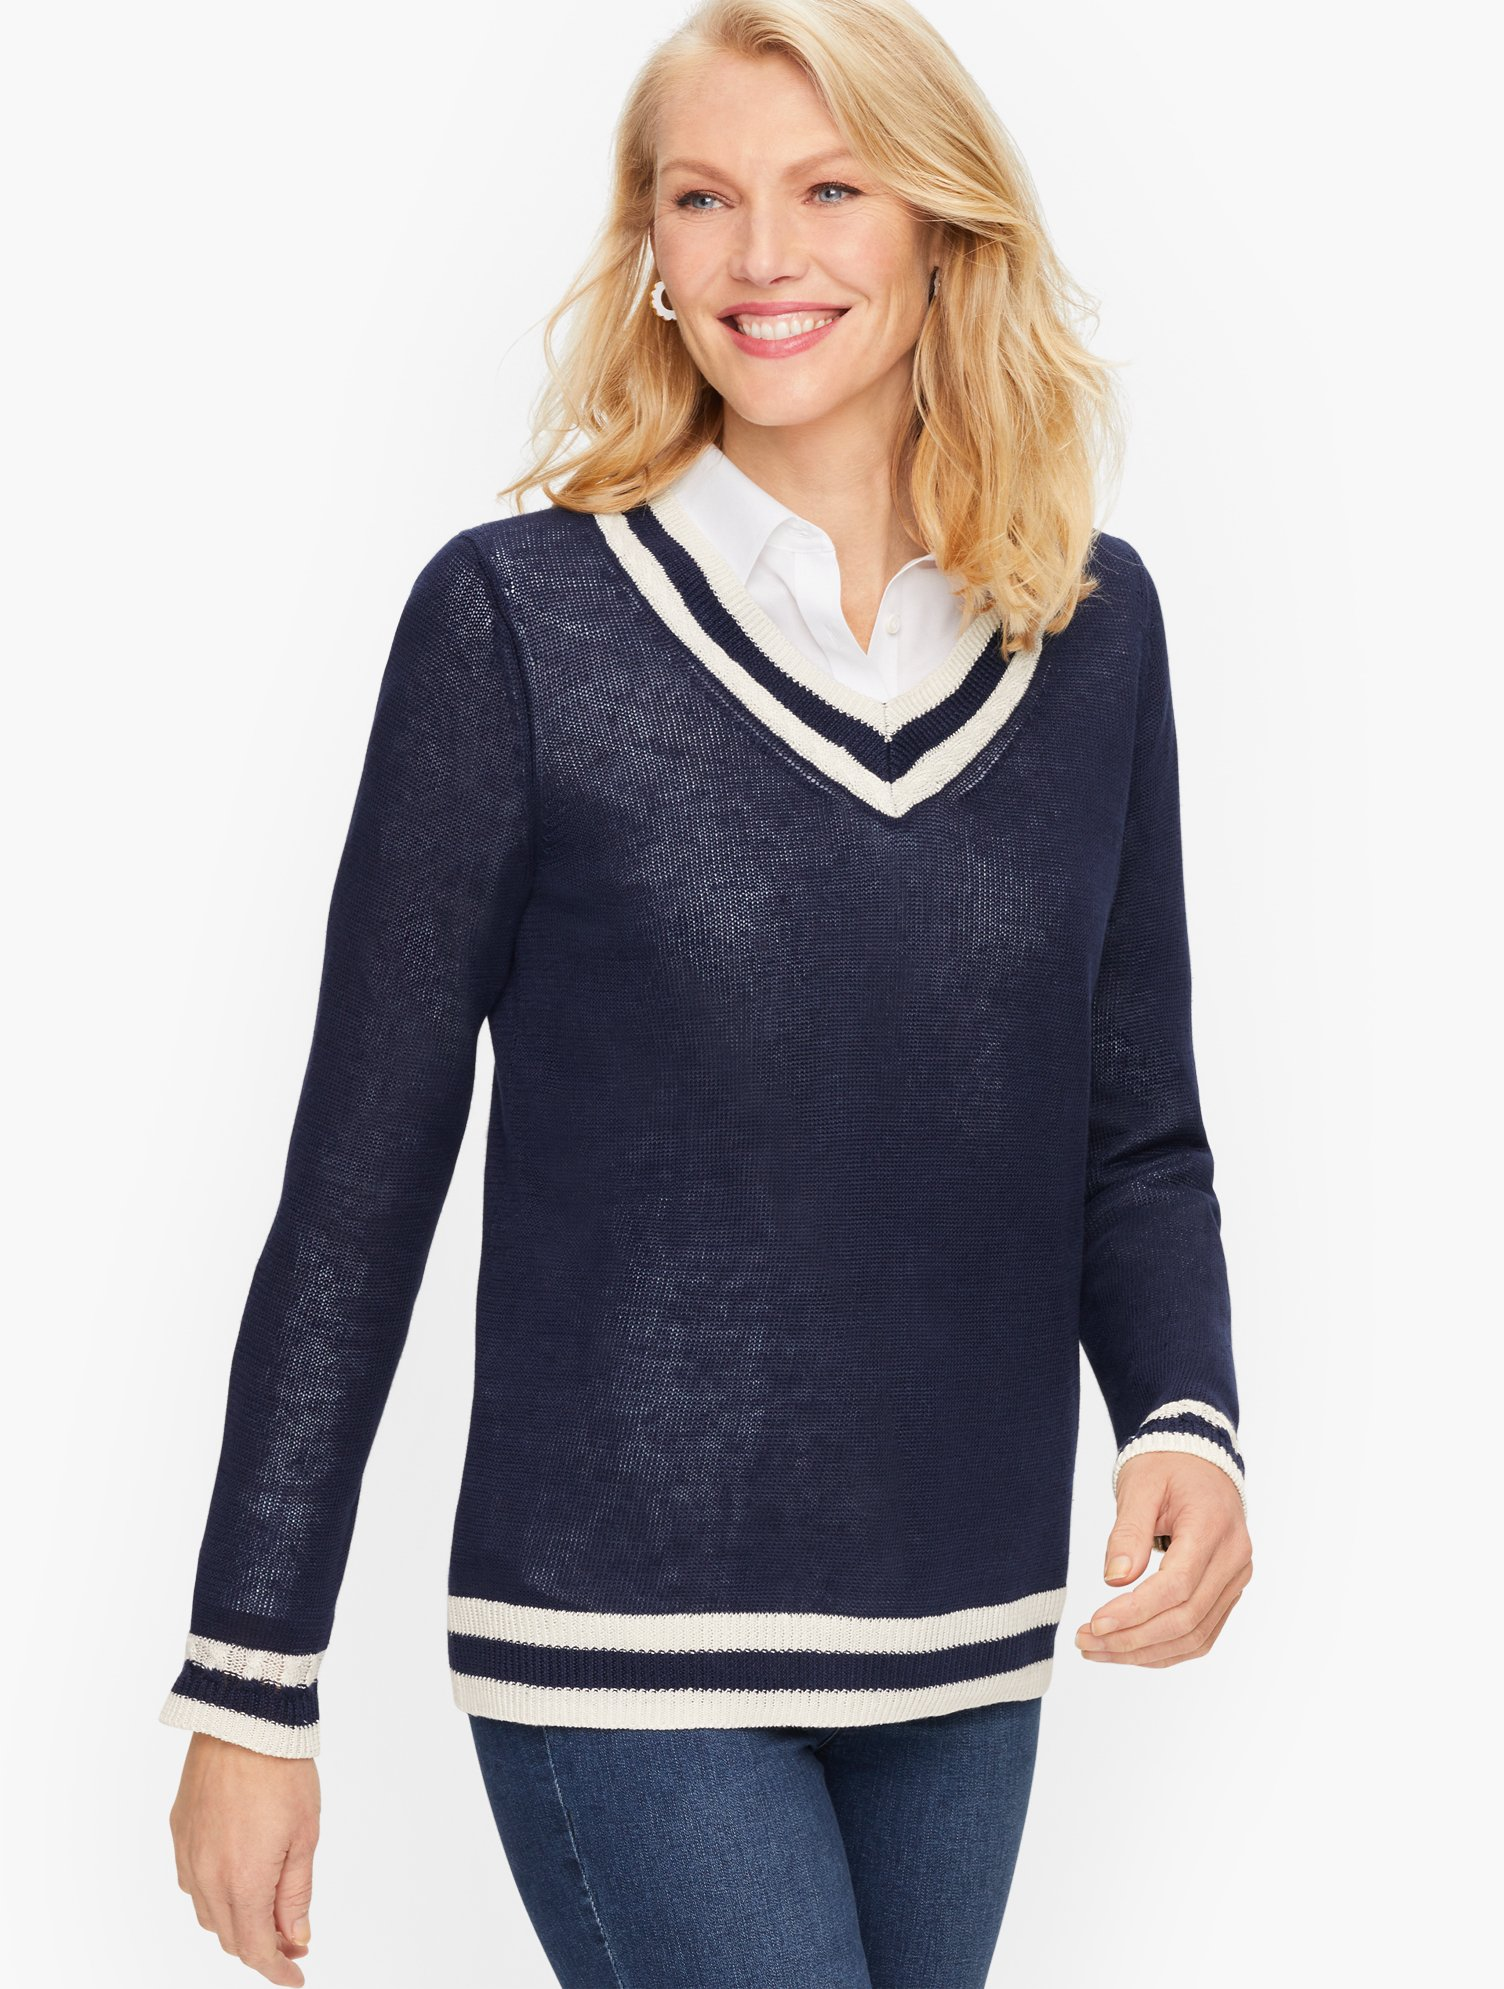 Ladies' Colorful 1920s Sweaters and Cardigans History Linen V-Neck Sweater - IndigoIvory - 3X Talbots $99.00 AT vintagedancer.com